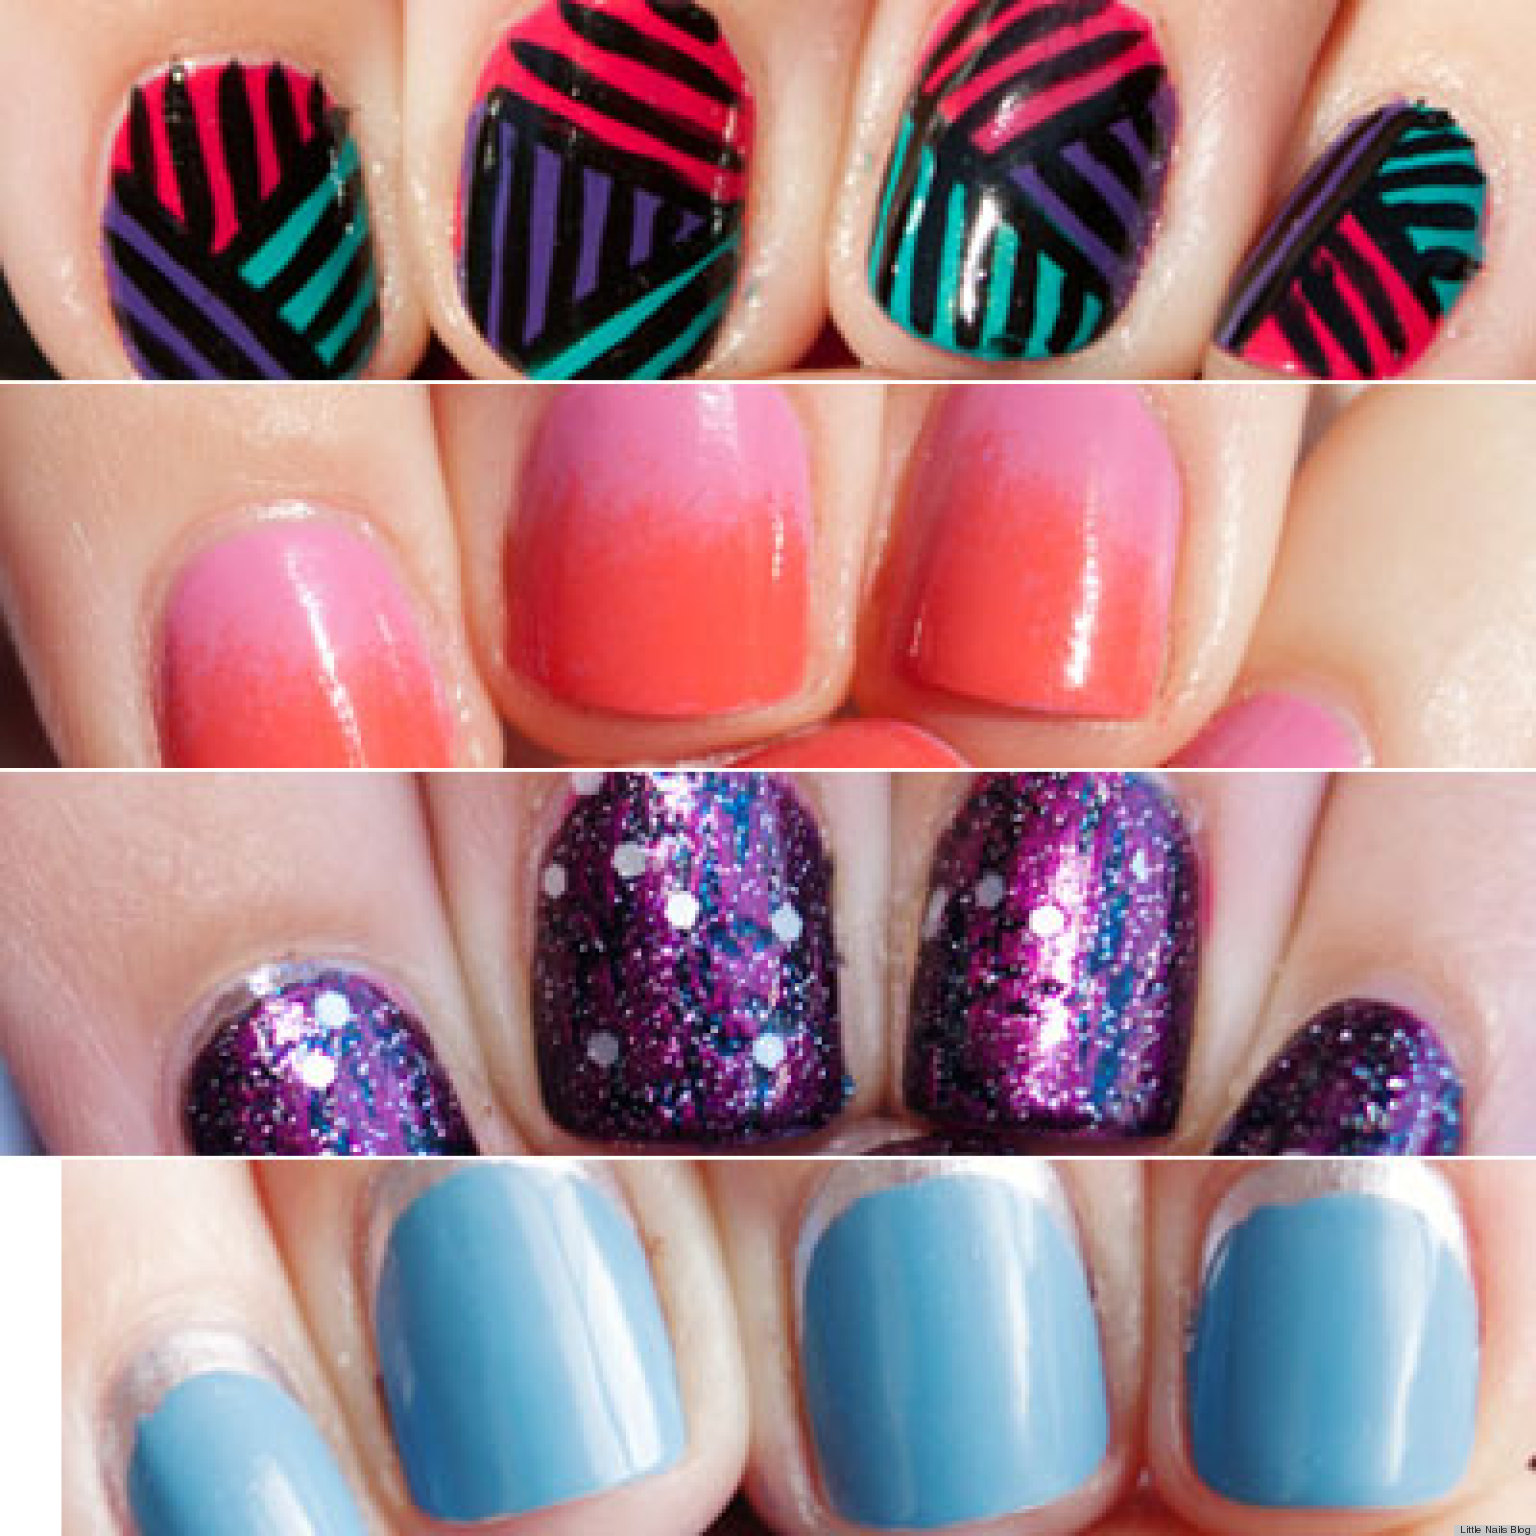 Simple Nail Art For Short Nails: 13 Nail Art Ideas For Teeny Tiny Fingertips (PHOTOS